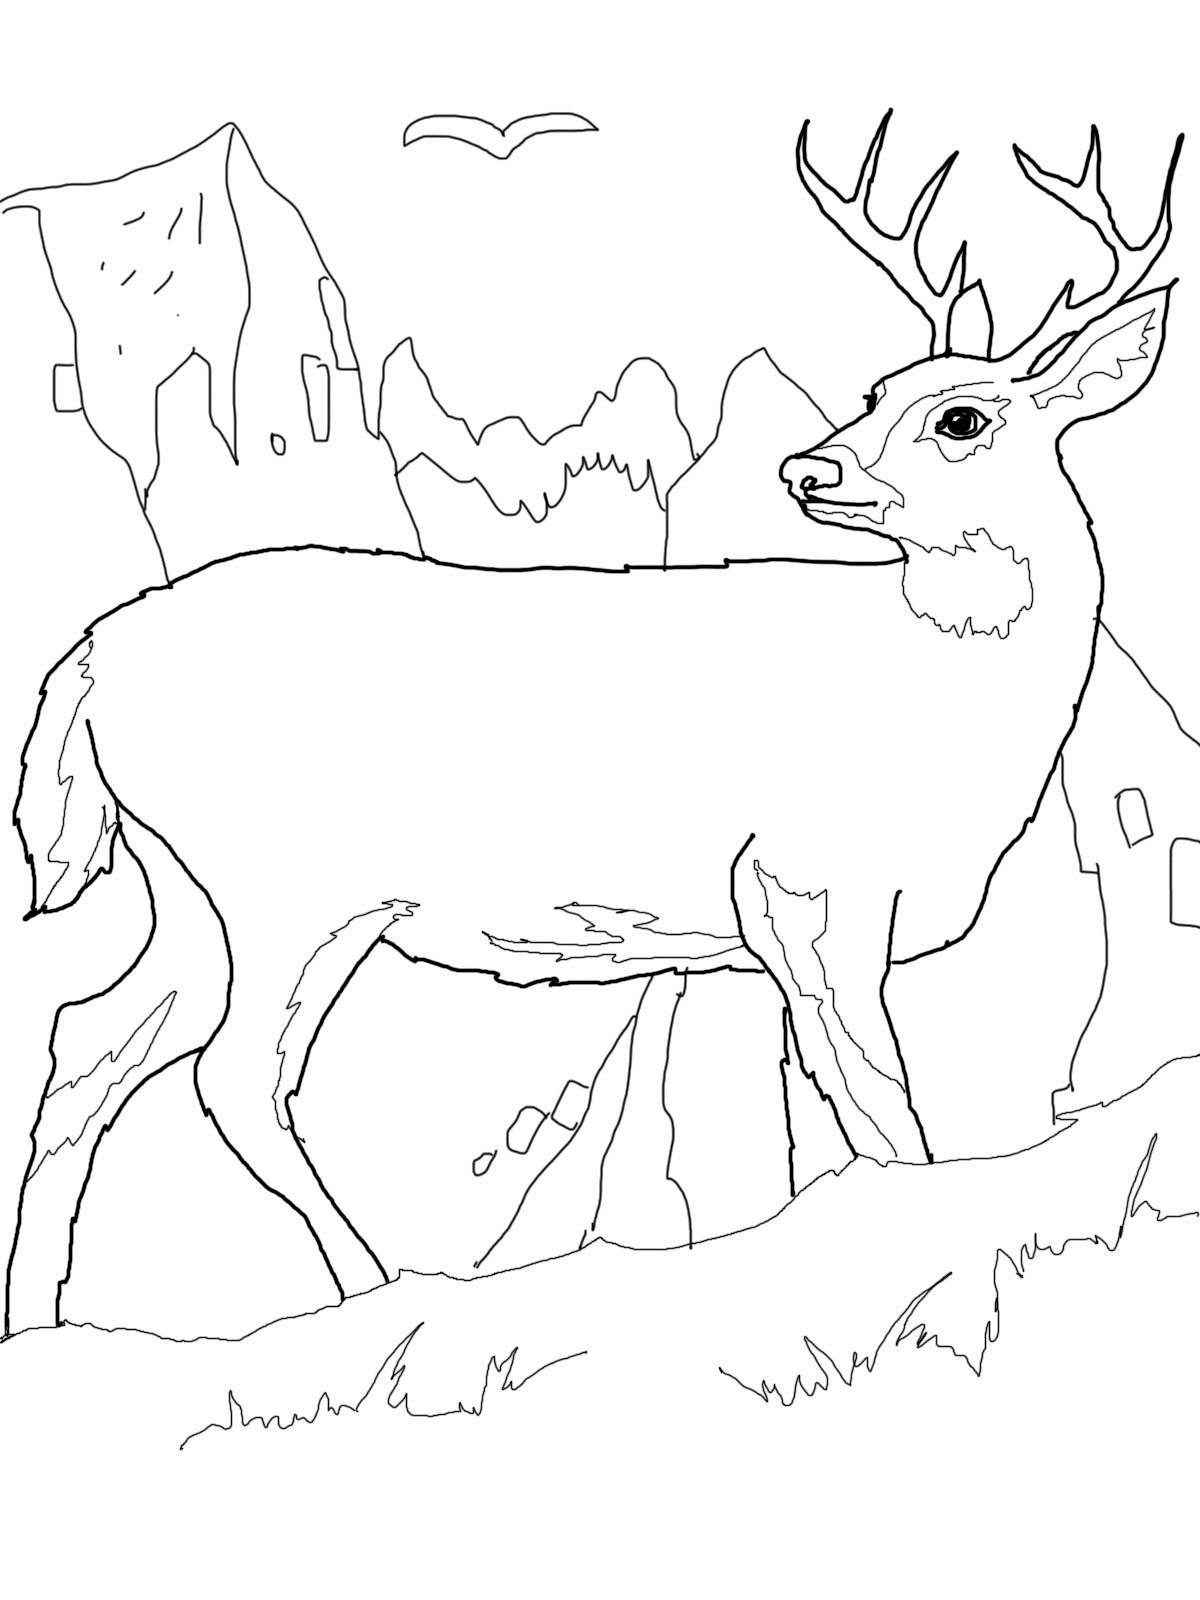 free printable deer coloring pages for kids adult coloring pages deer head deer head coloring pages - Deer Coloring Pages